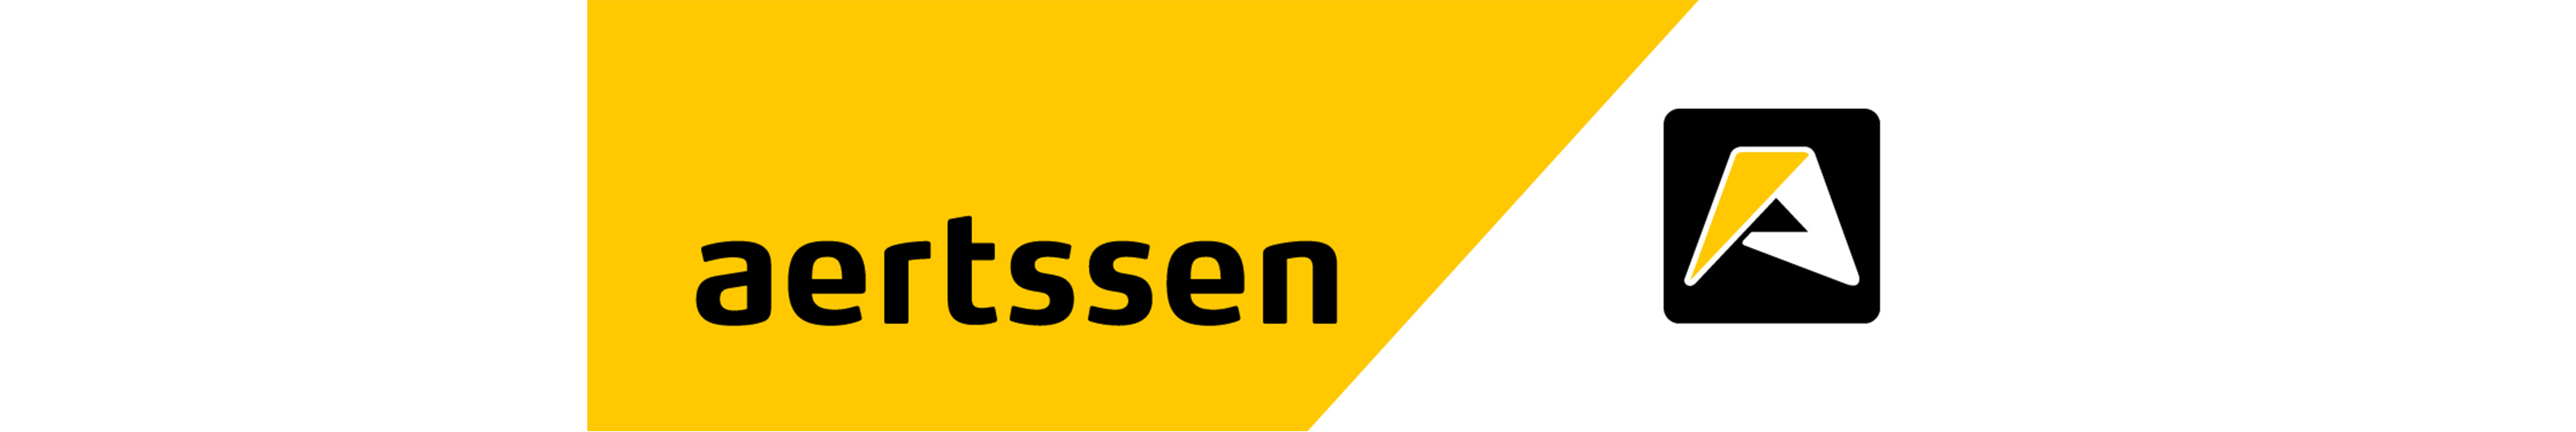 Referent logo Aertssen